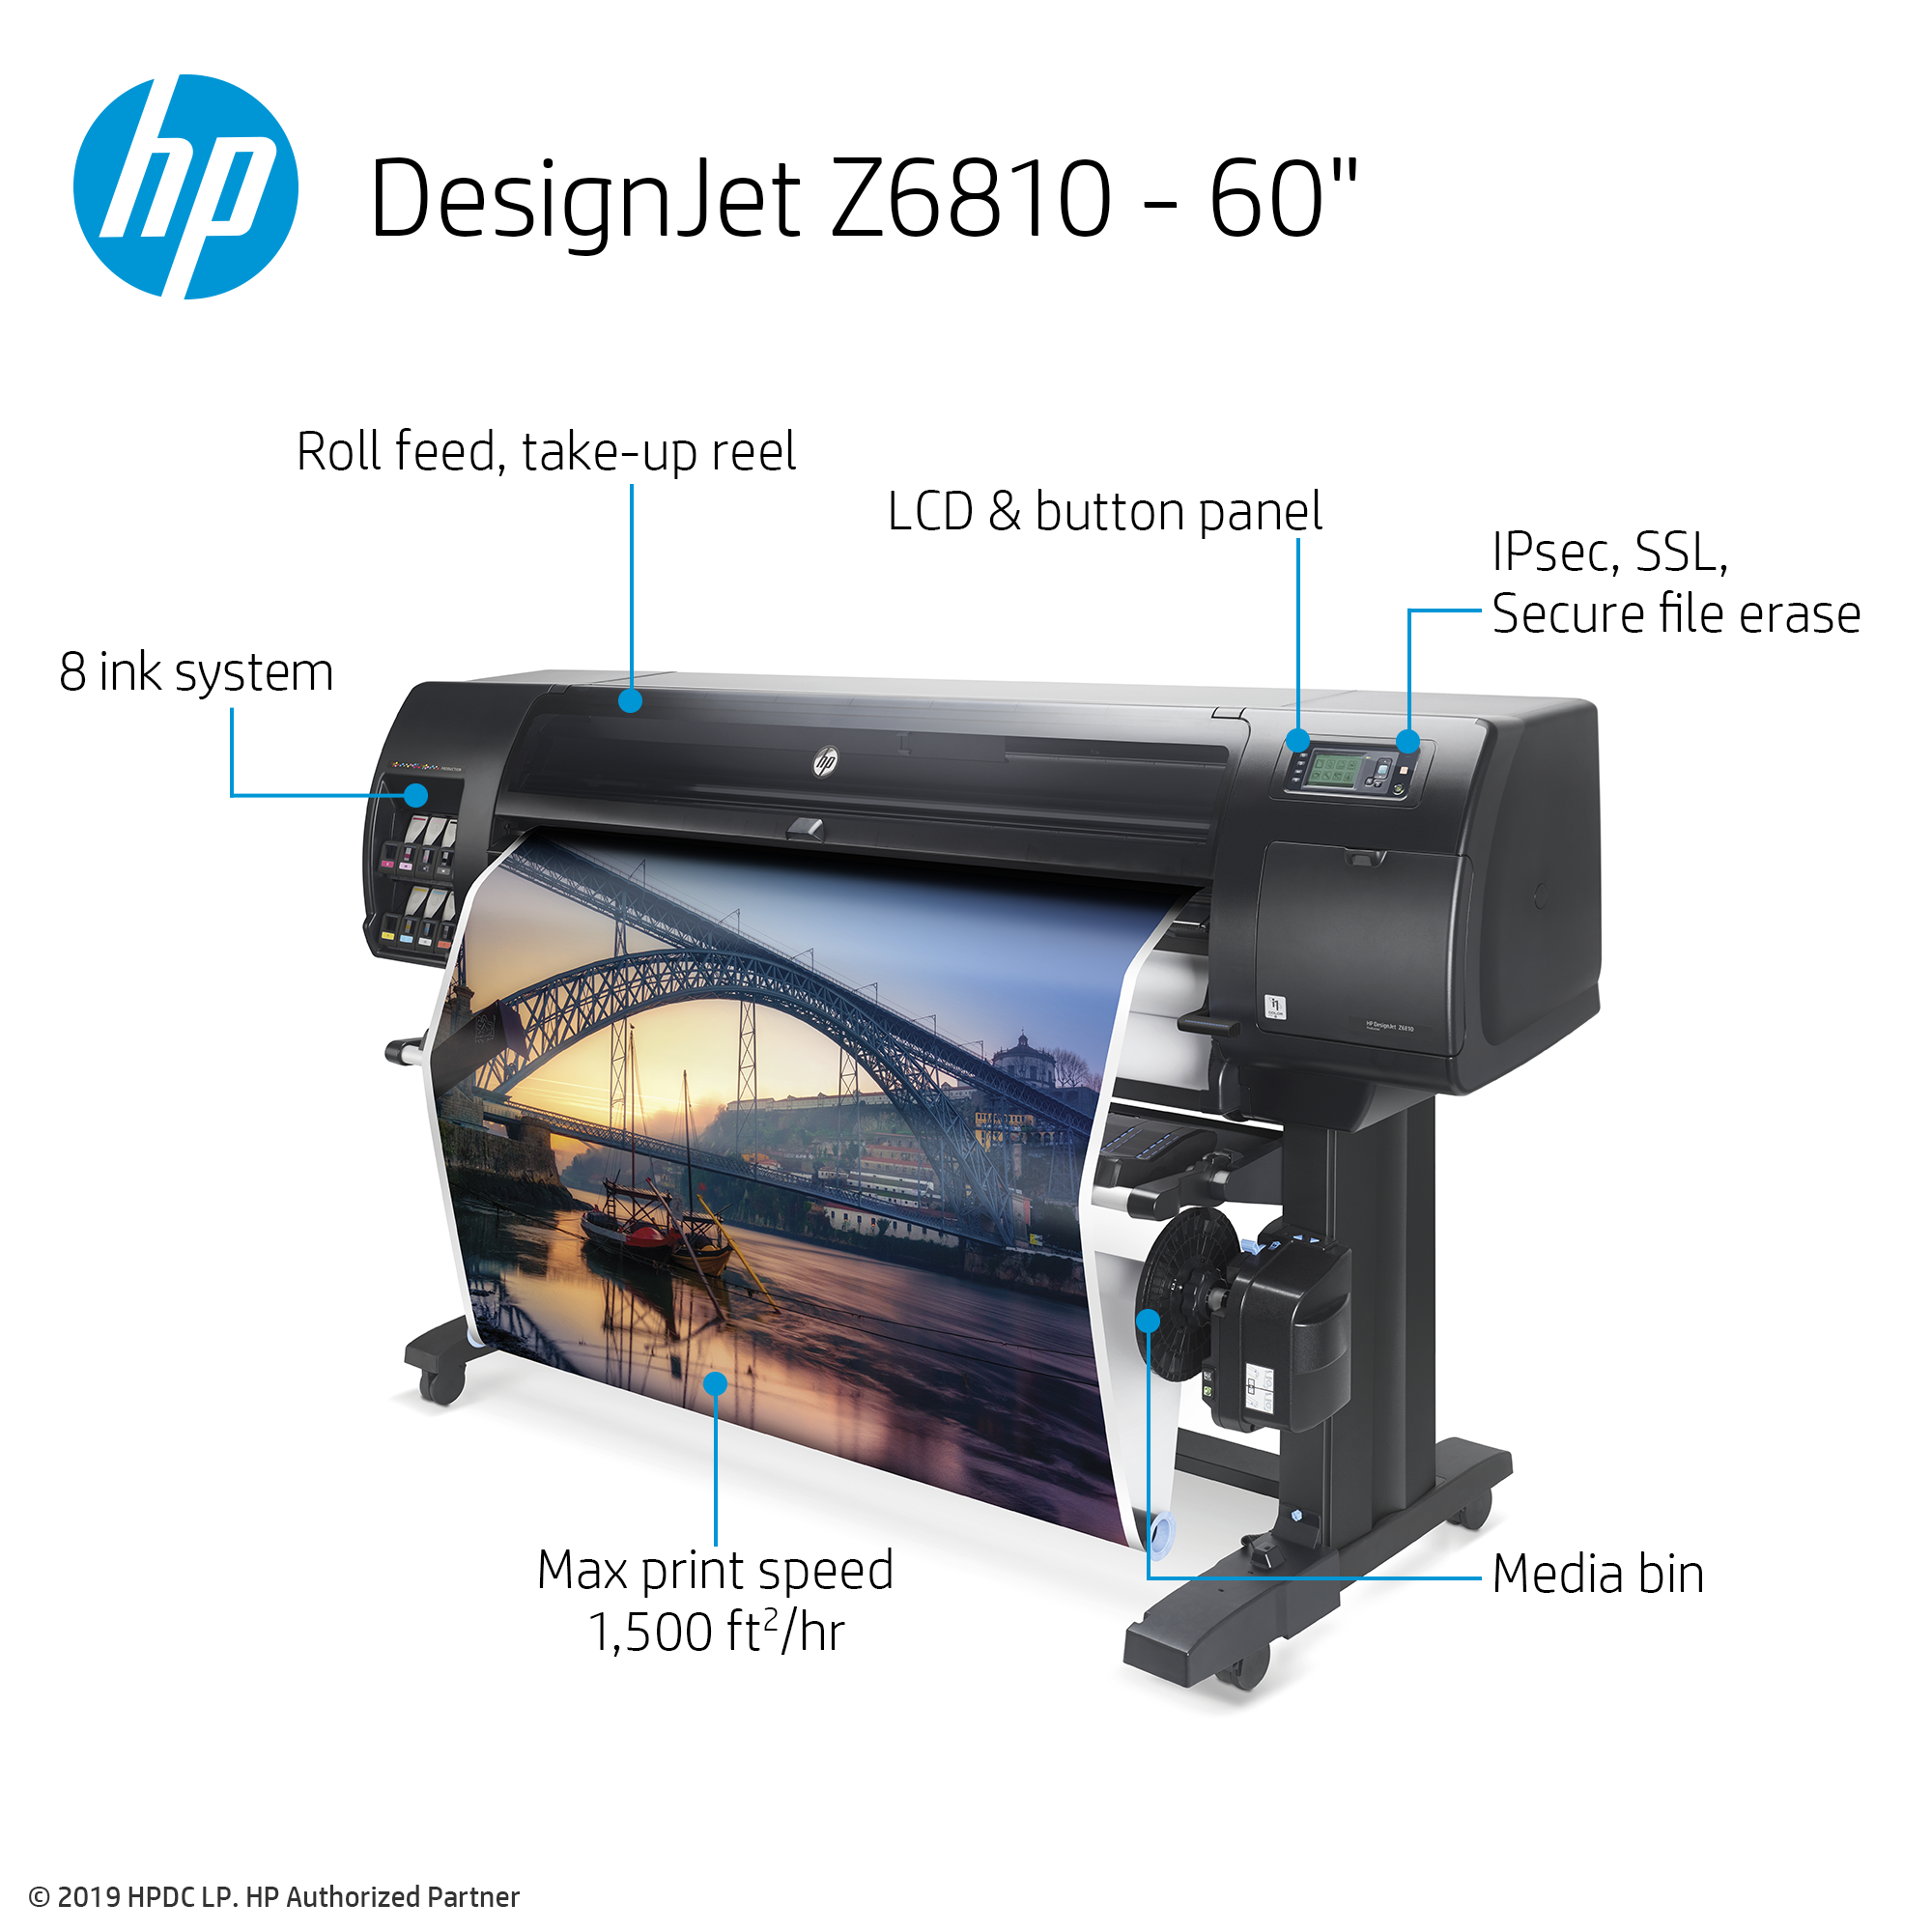 "HP DesignJet Z6810 Large Format Photo Printer - 60"", with ..."